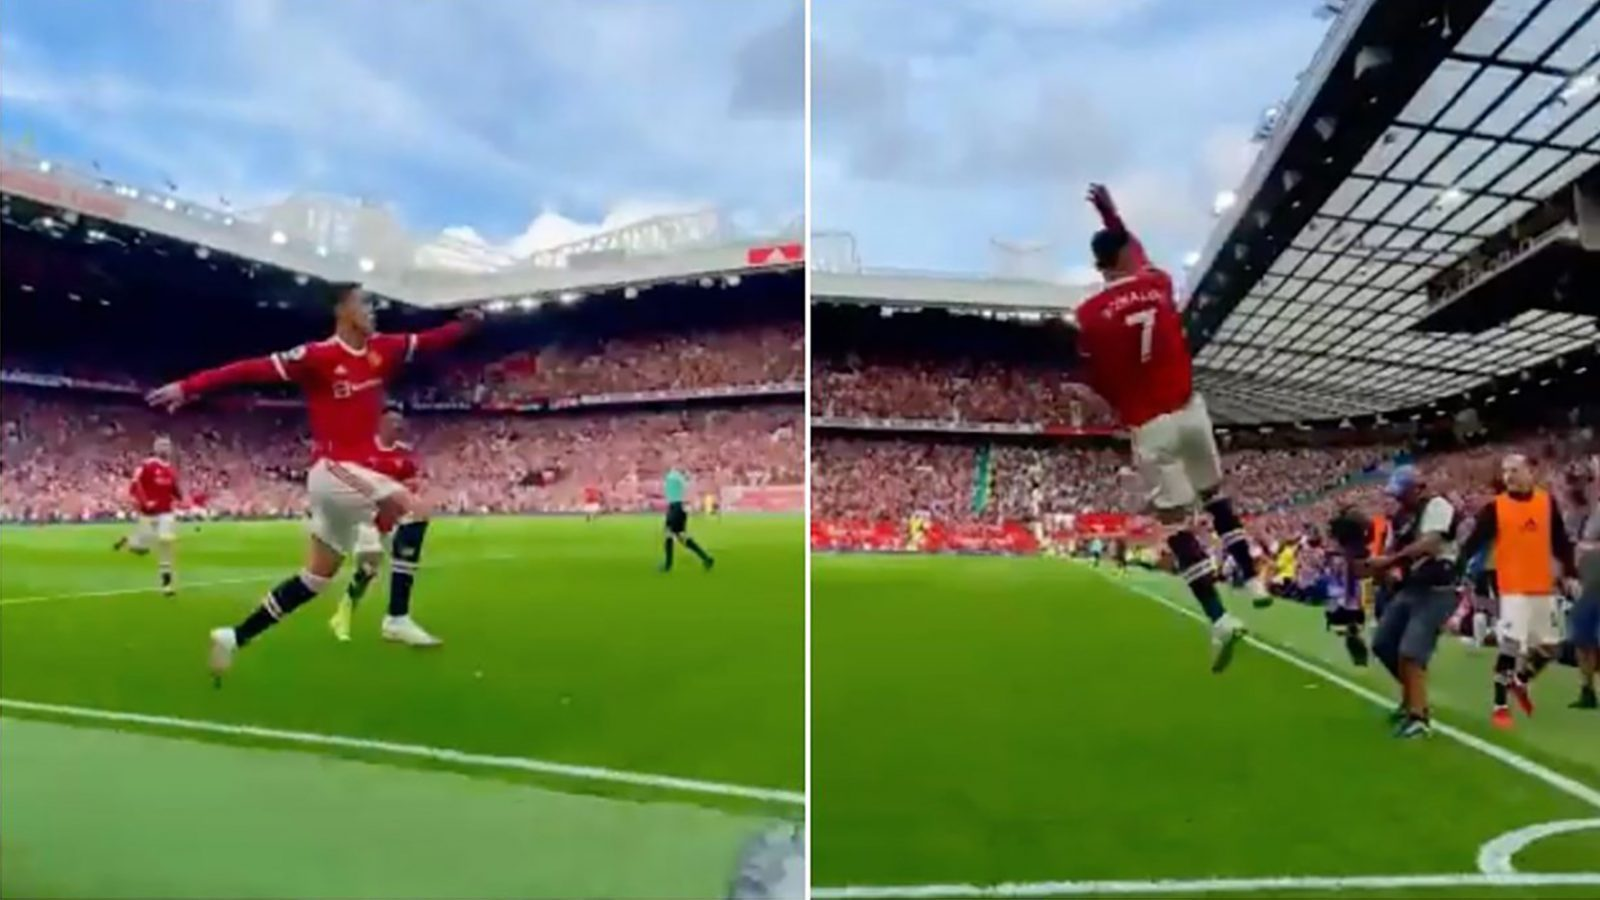 Manchester United fan falls on pint glass and almost loses leg celebrating Ronaldo goal, The Manc